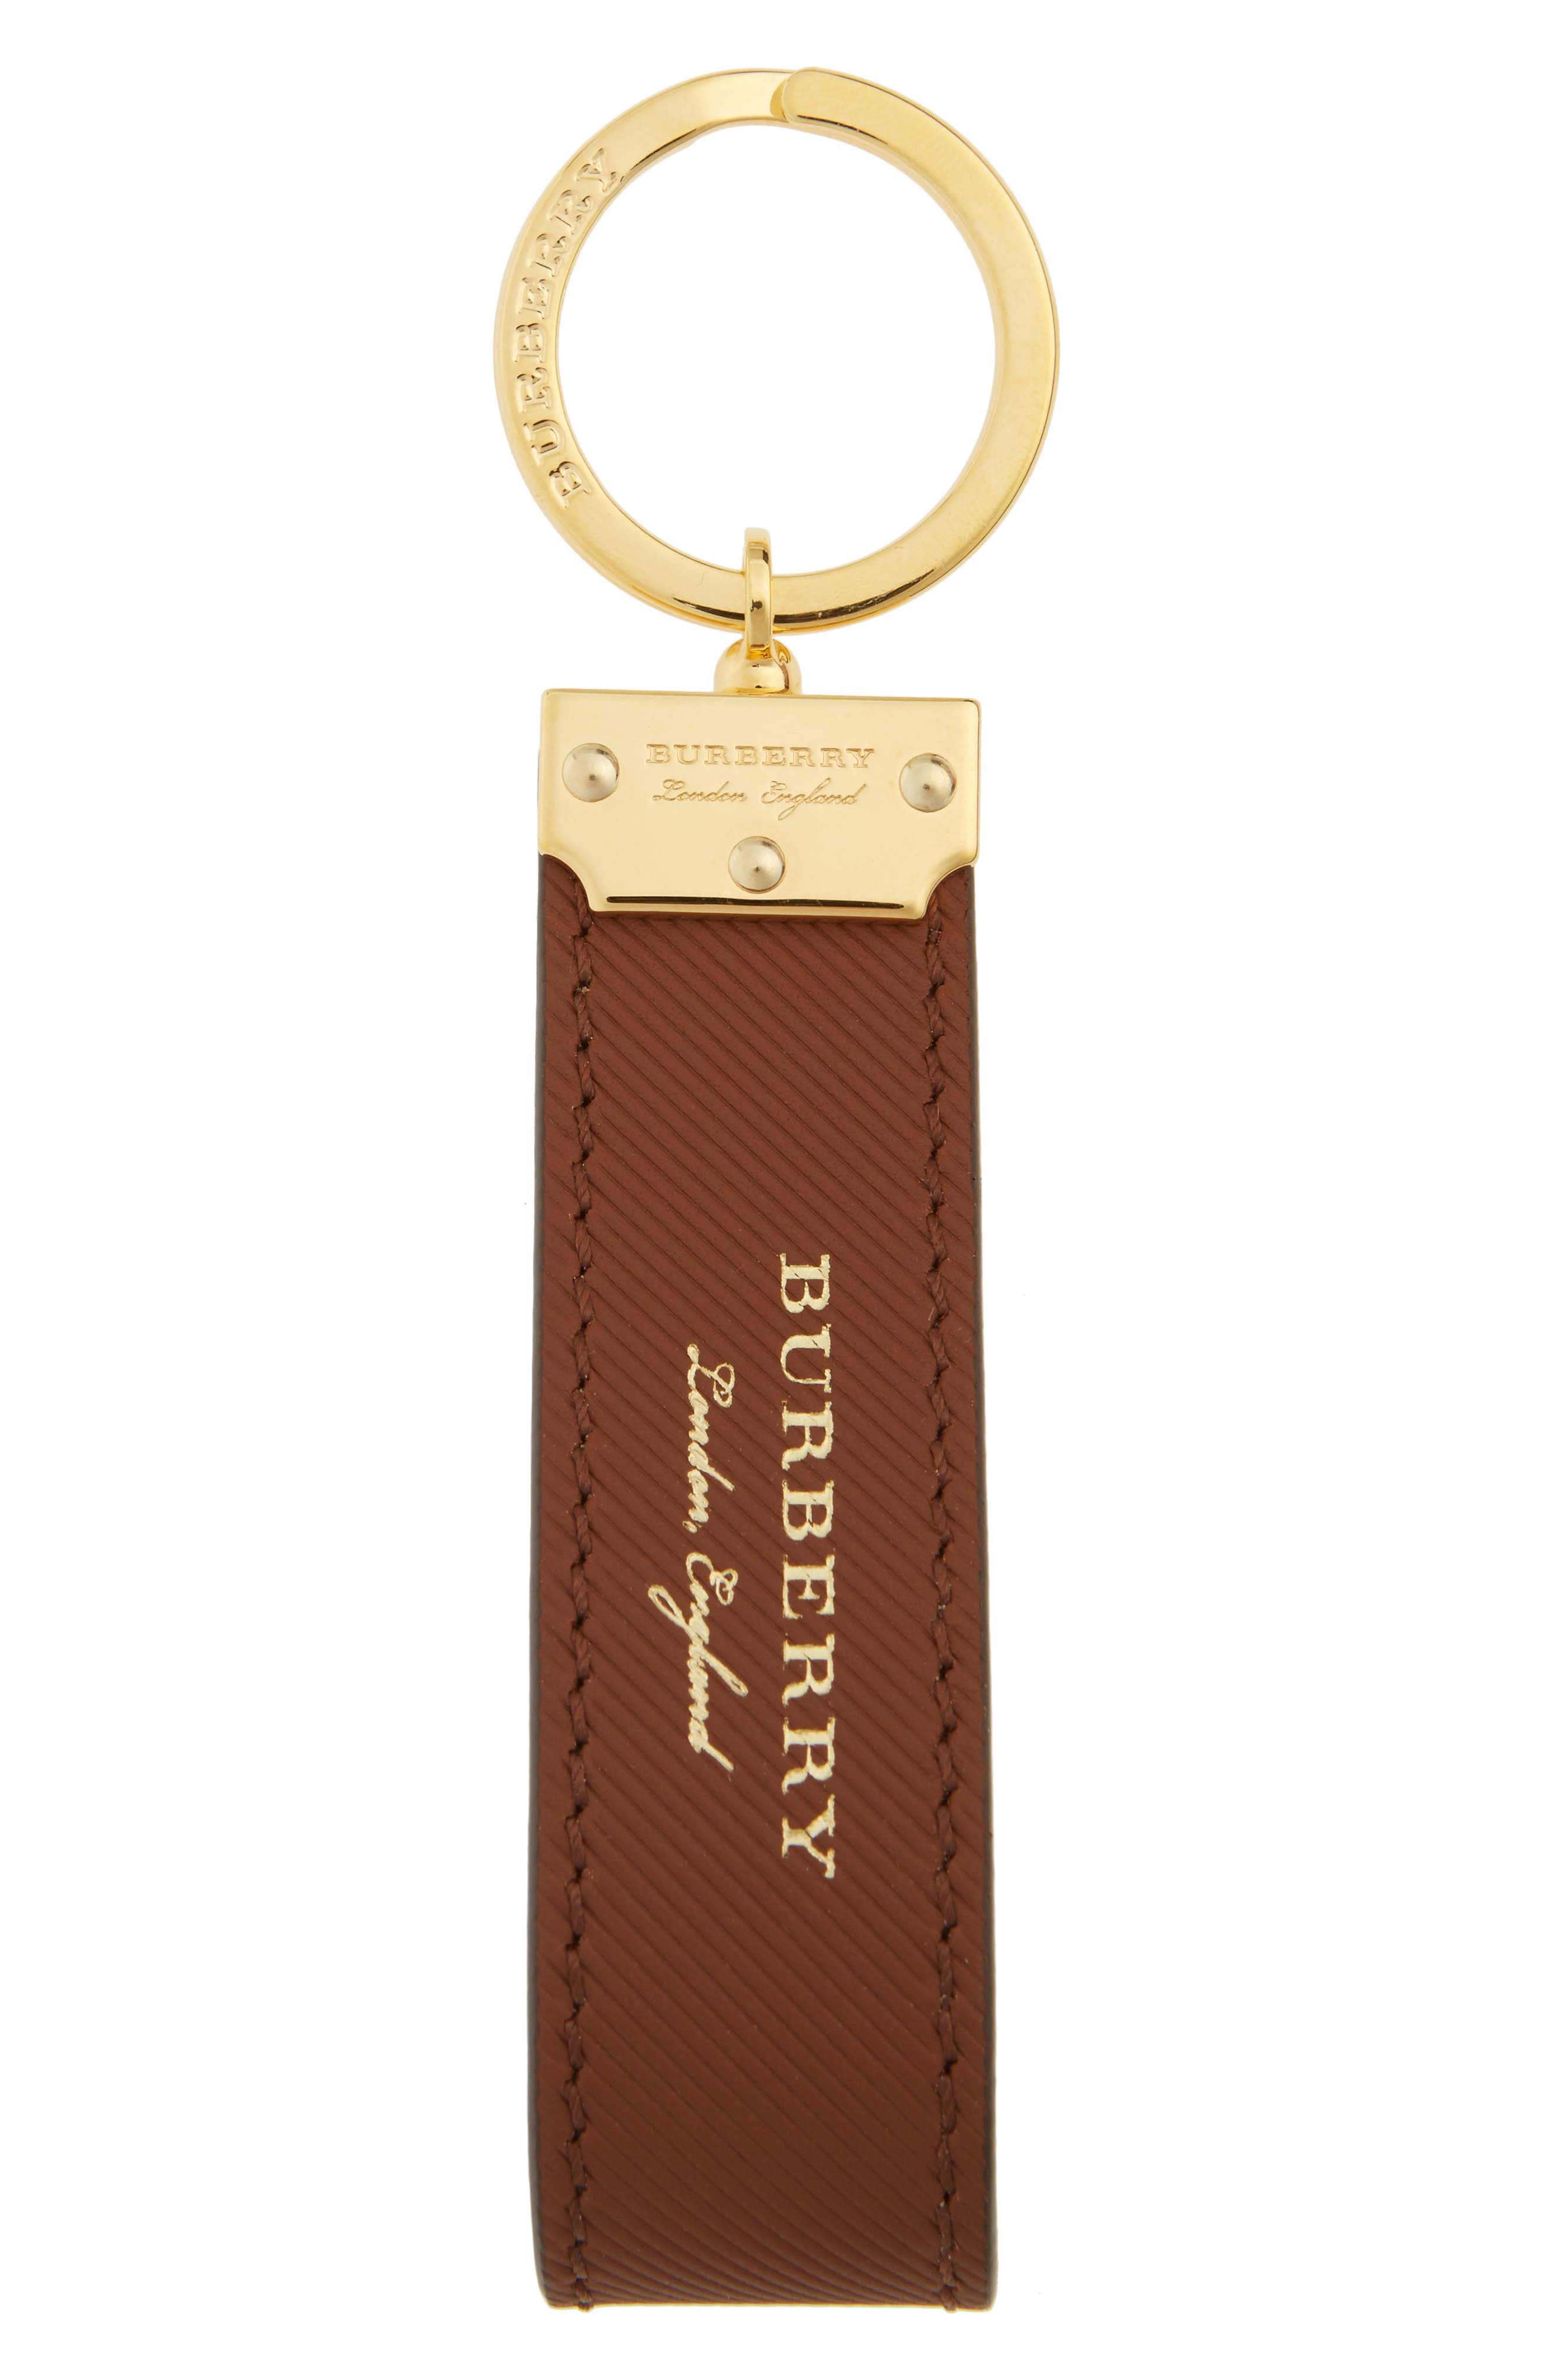 Burberry Trench Leather Key Chain